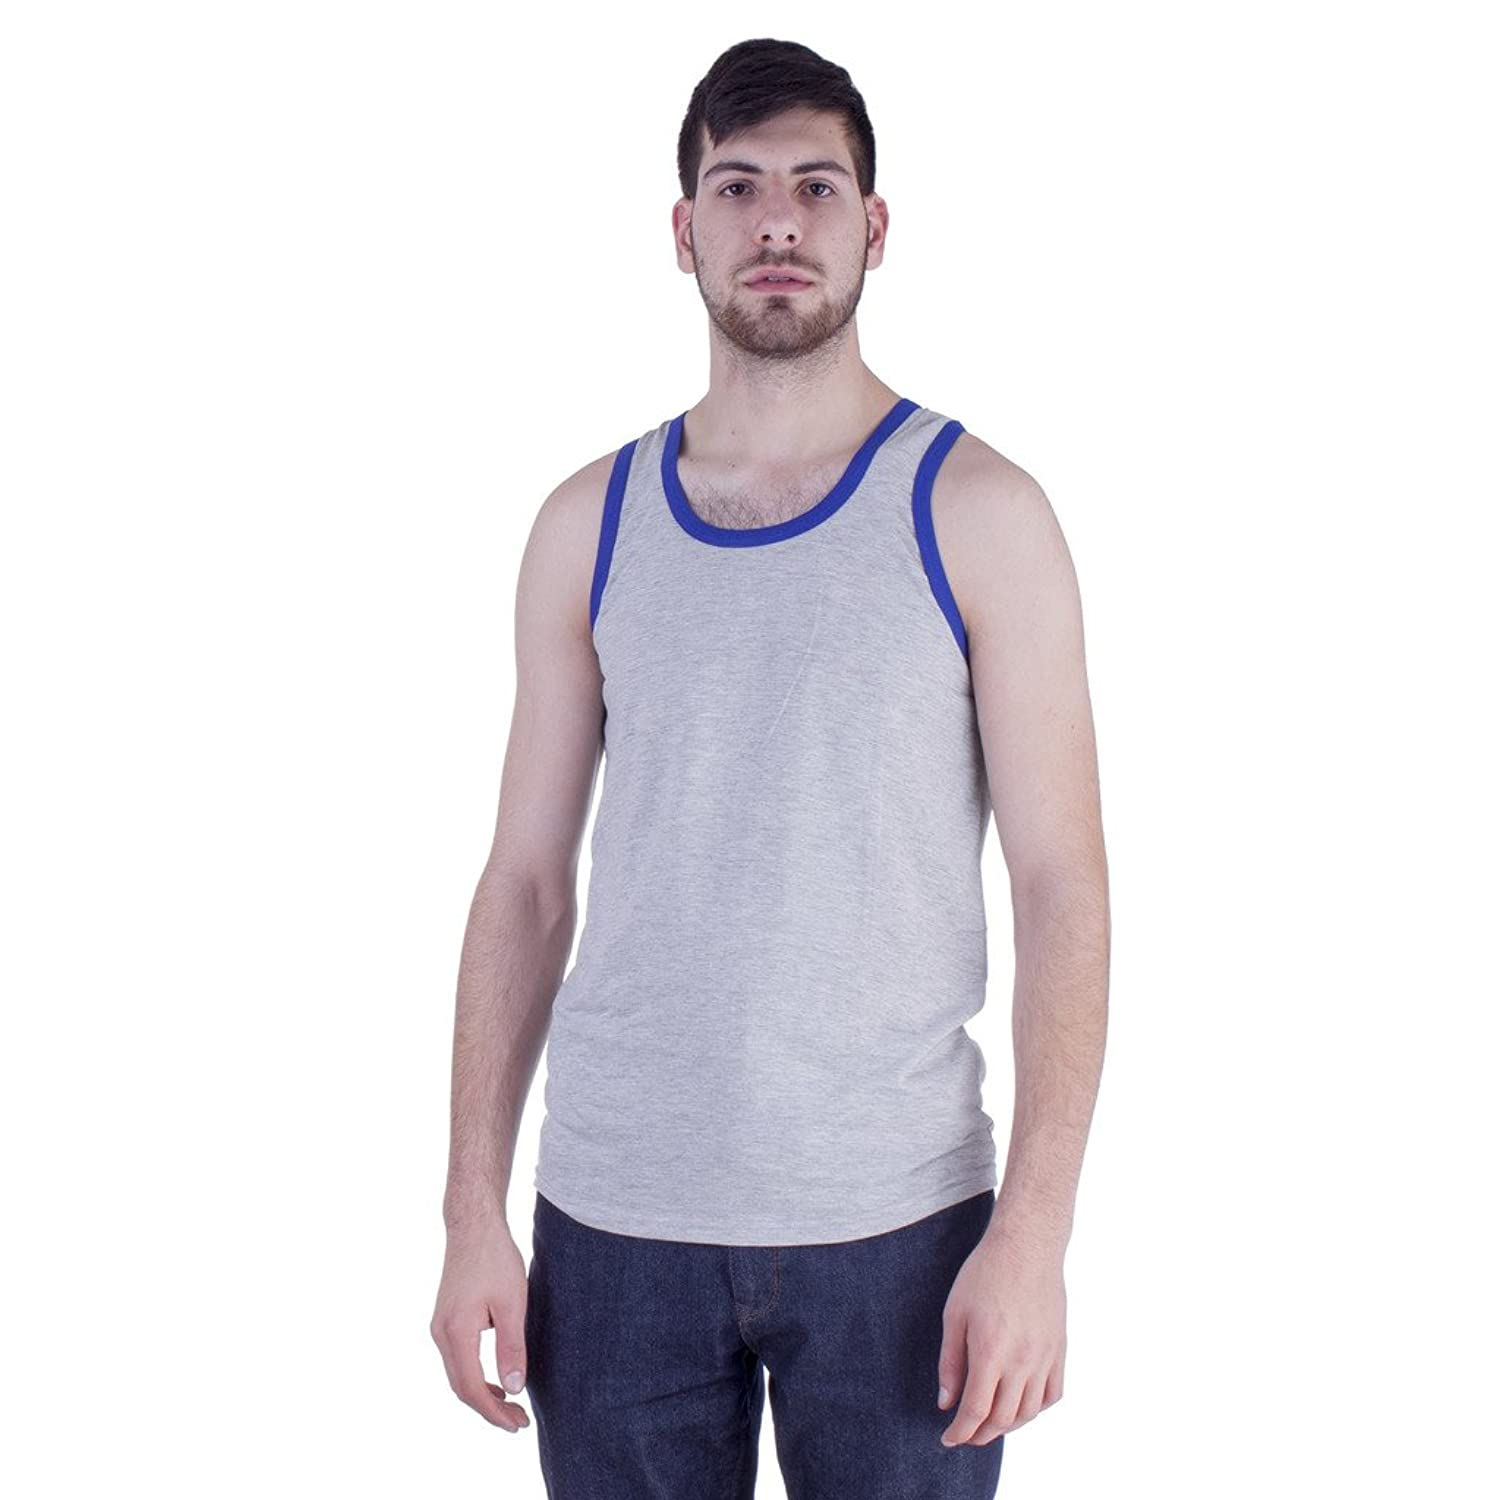 c6cd92387 Amazon.com  Mens Cheap Beach Tank Top - Sleeveless Gym Muscle Fit T Shirt  For Guys  Clothing